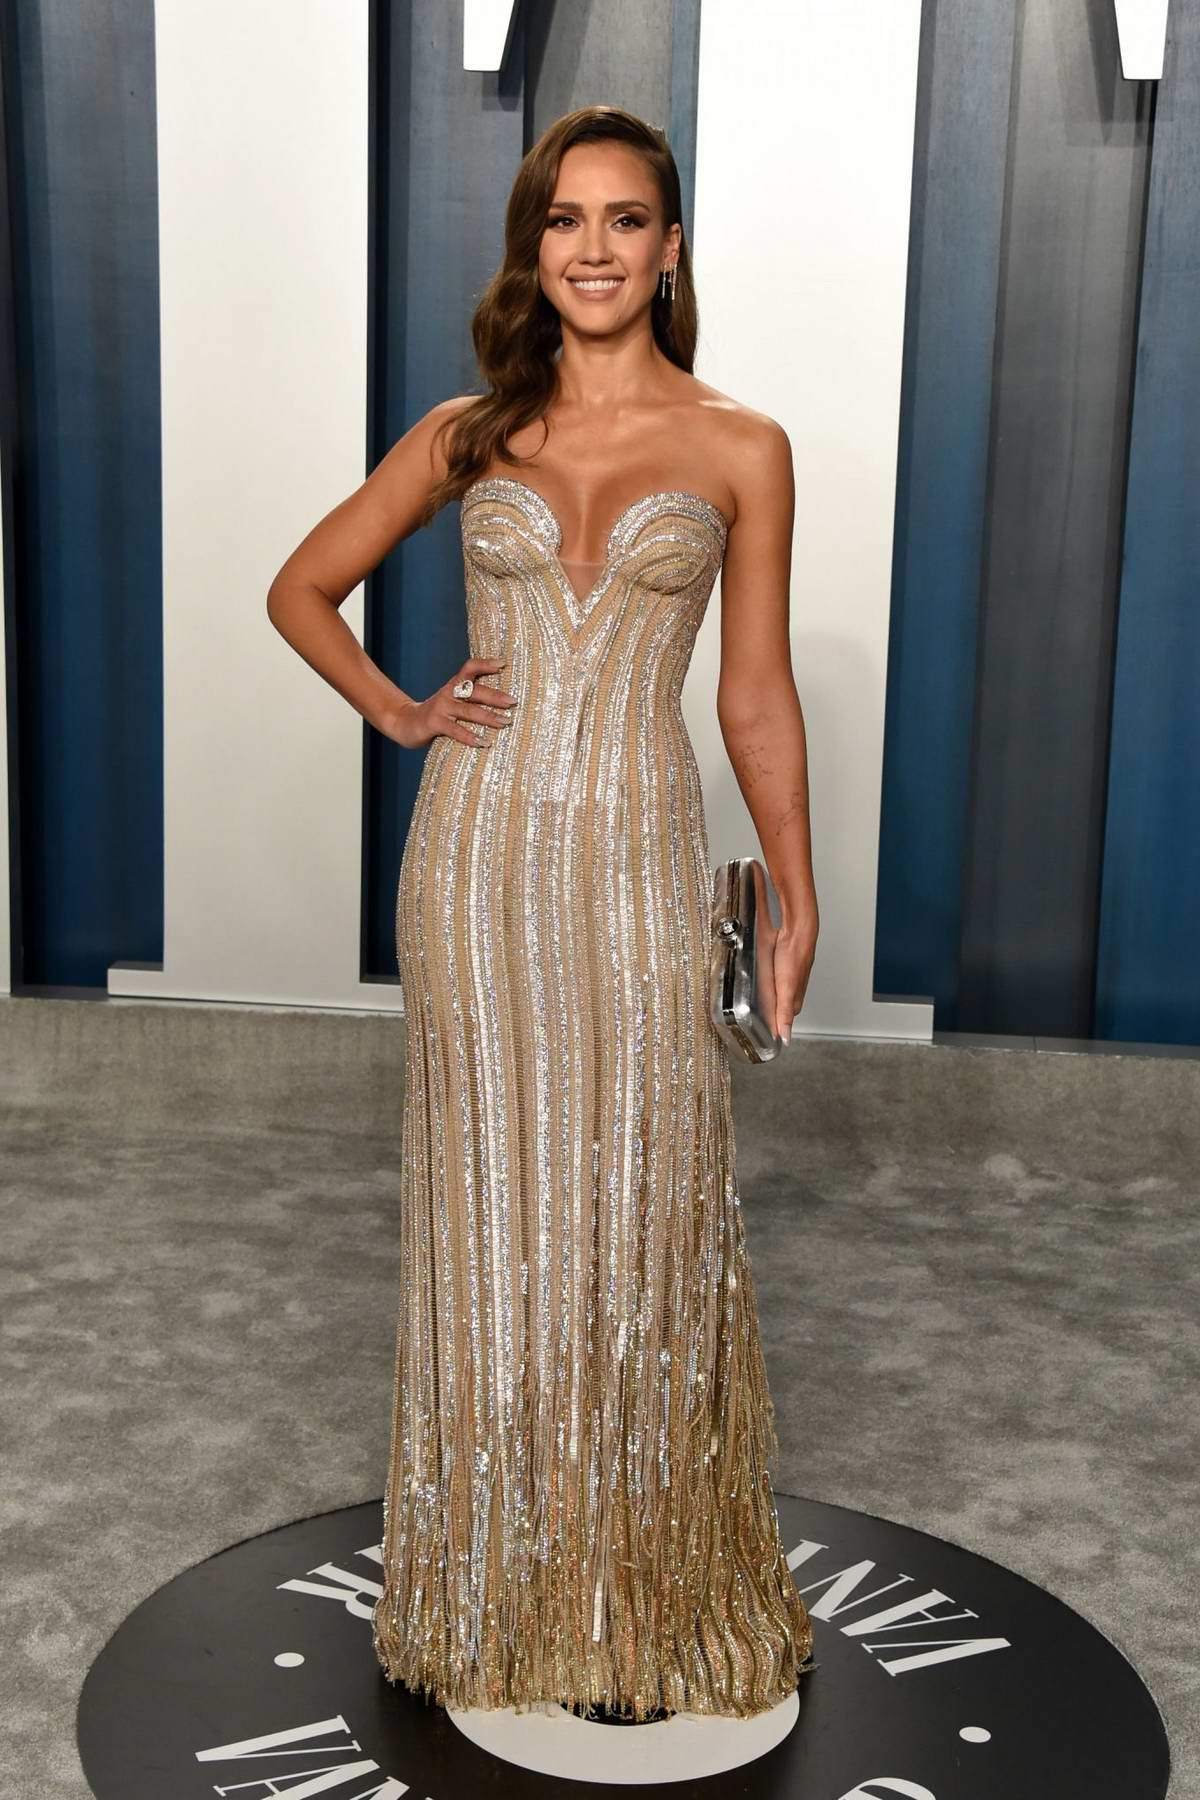 Jessica Alba attends the 2020 Vanity Fair Oscar Party at Wallis Annenberg Center for the Performing Arts in Los Angeles